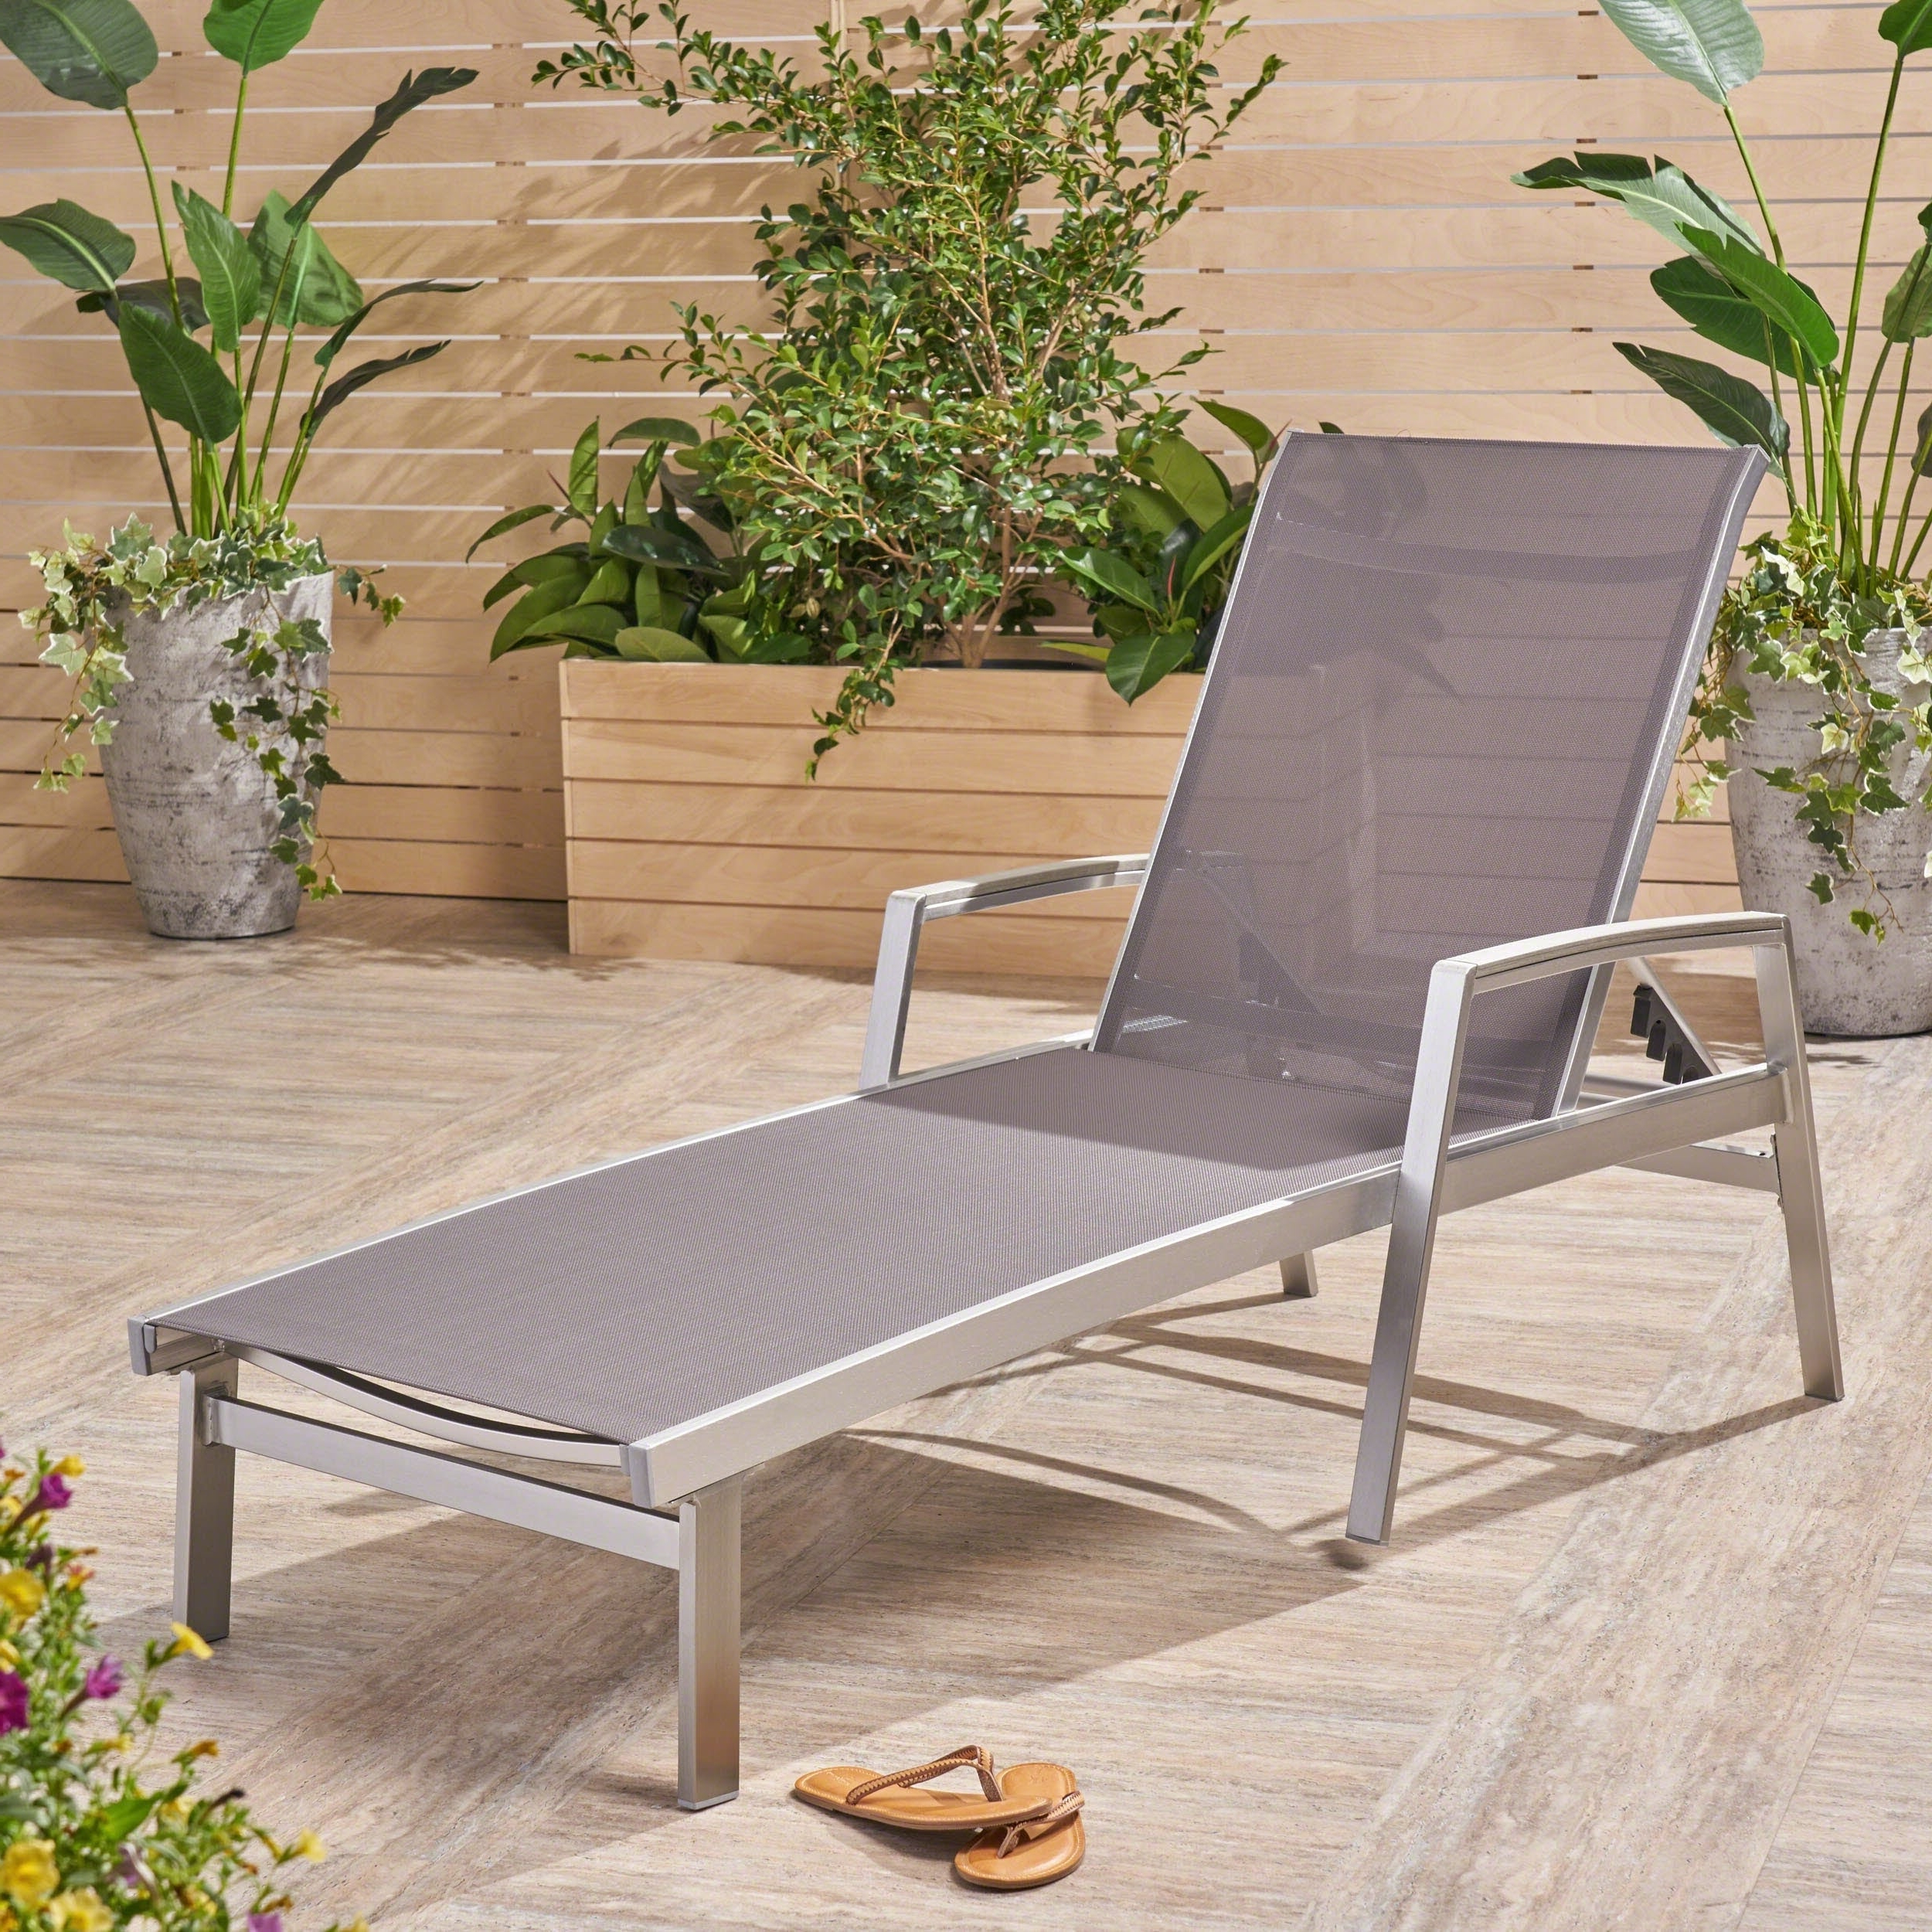 Oxton Outdoor Aluminum Chaise Loungechristopher Knight Home With Regard To Well Known Outdoor Aluminum Adjustable Chaise Lounges (View 10 of 25)